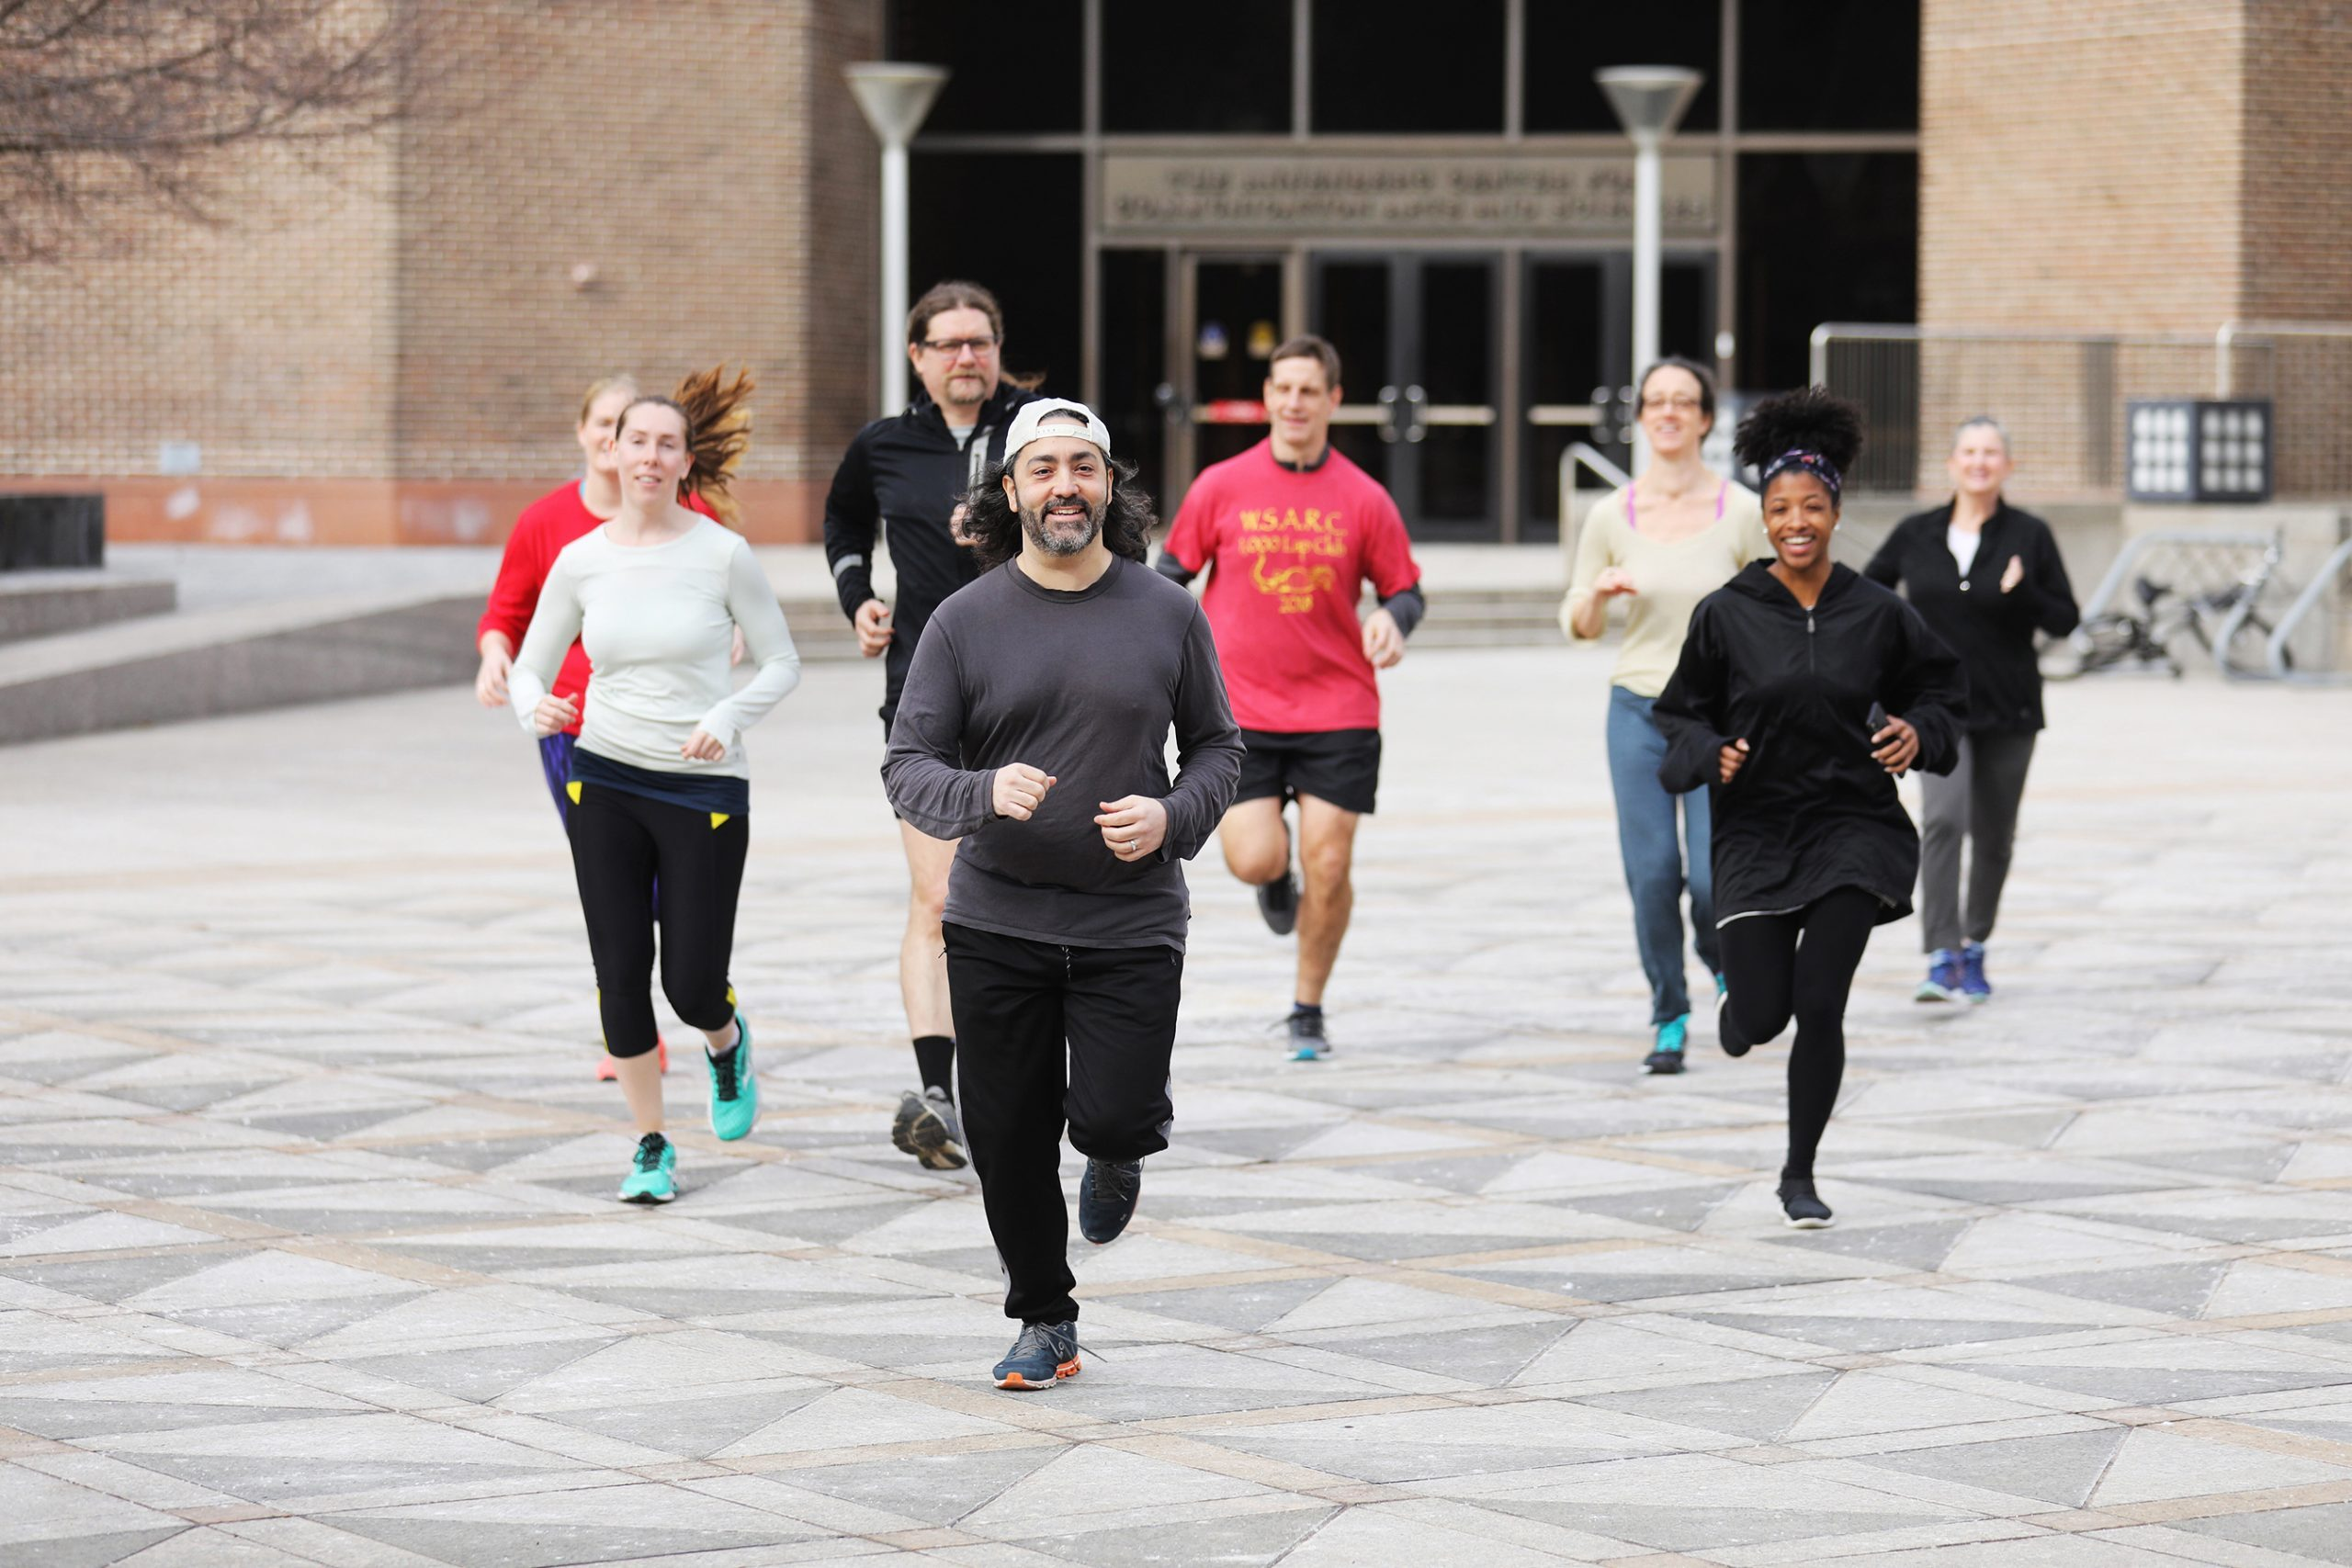 Mario Giorno (middle) and other members of The Annenberg Running Club